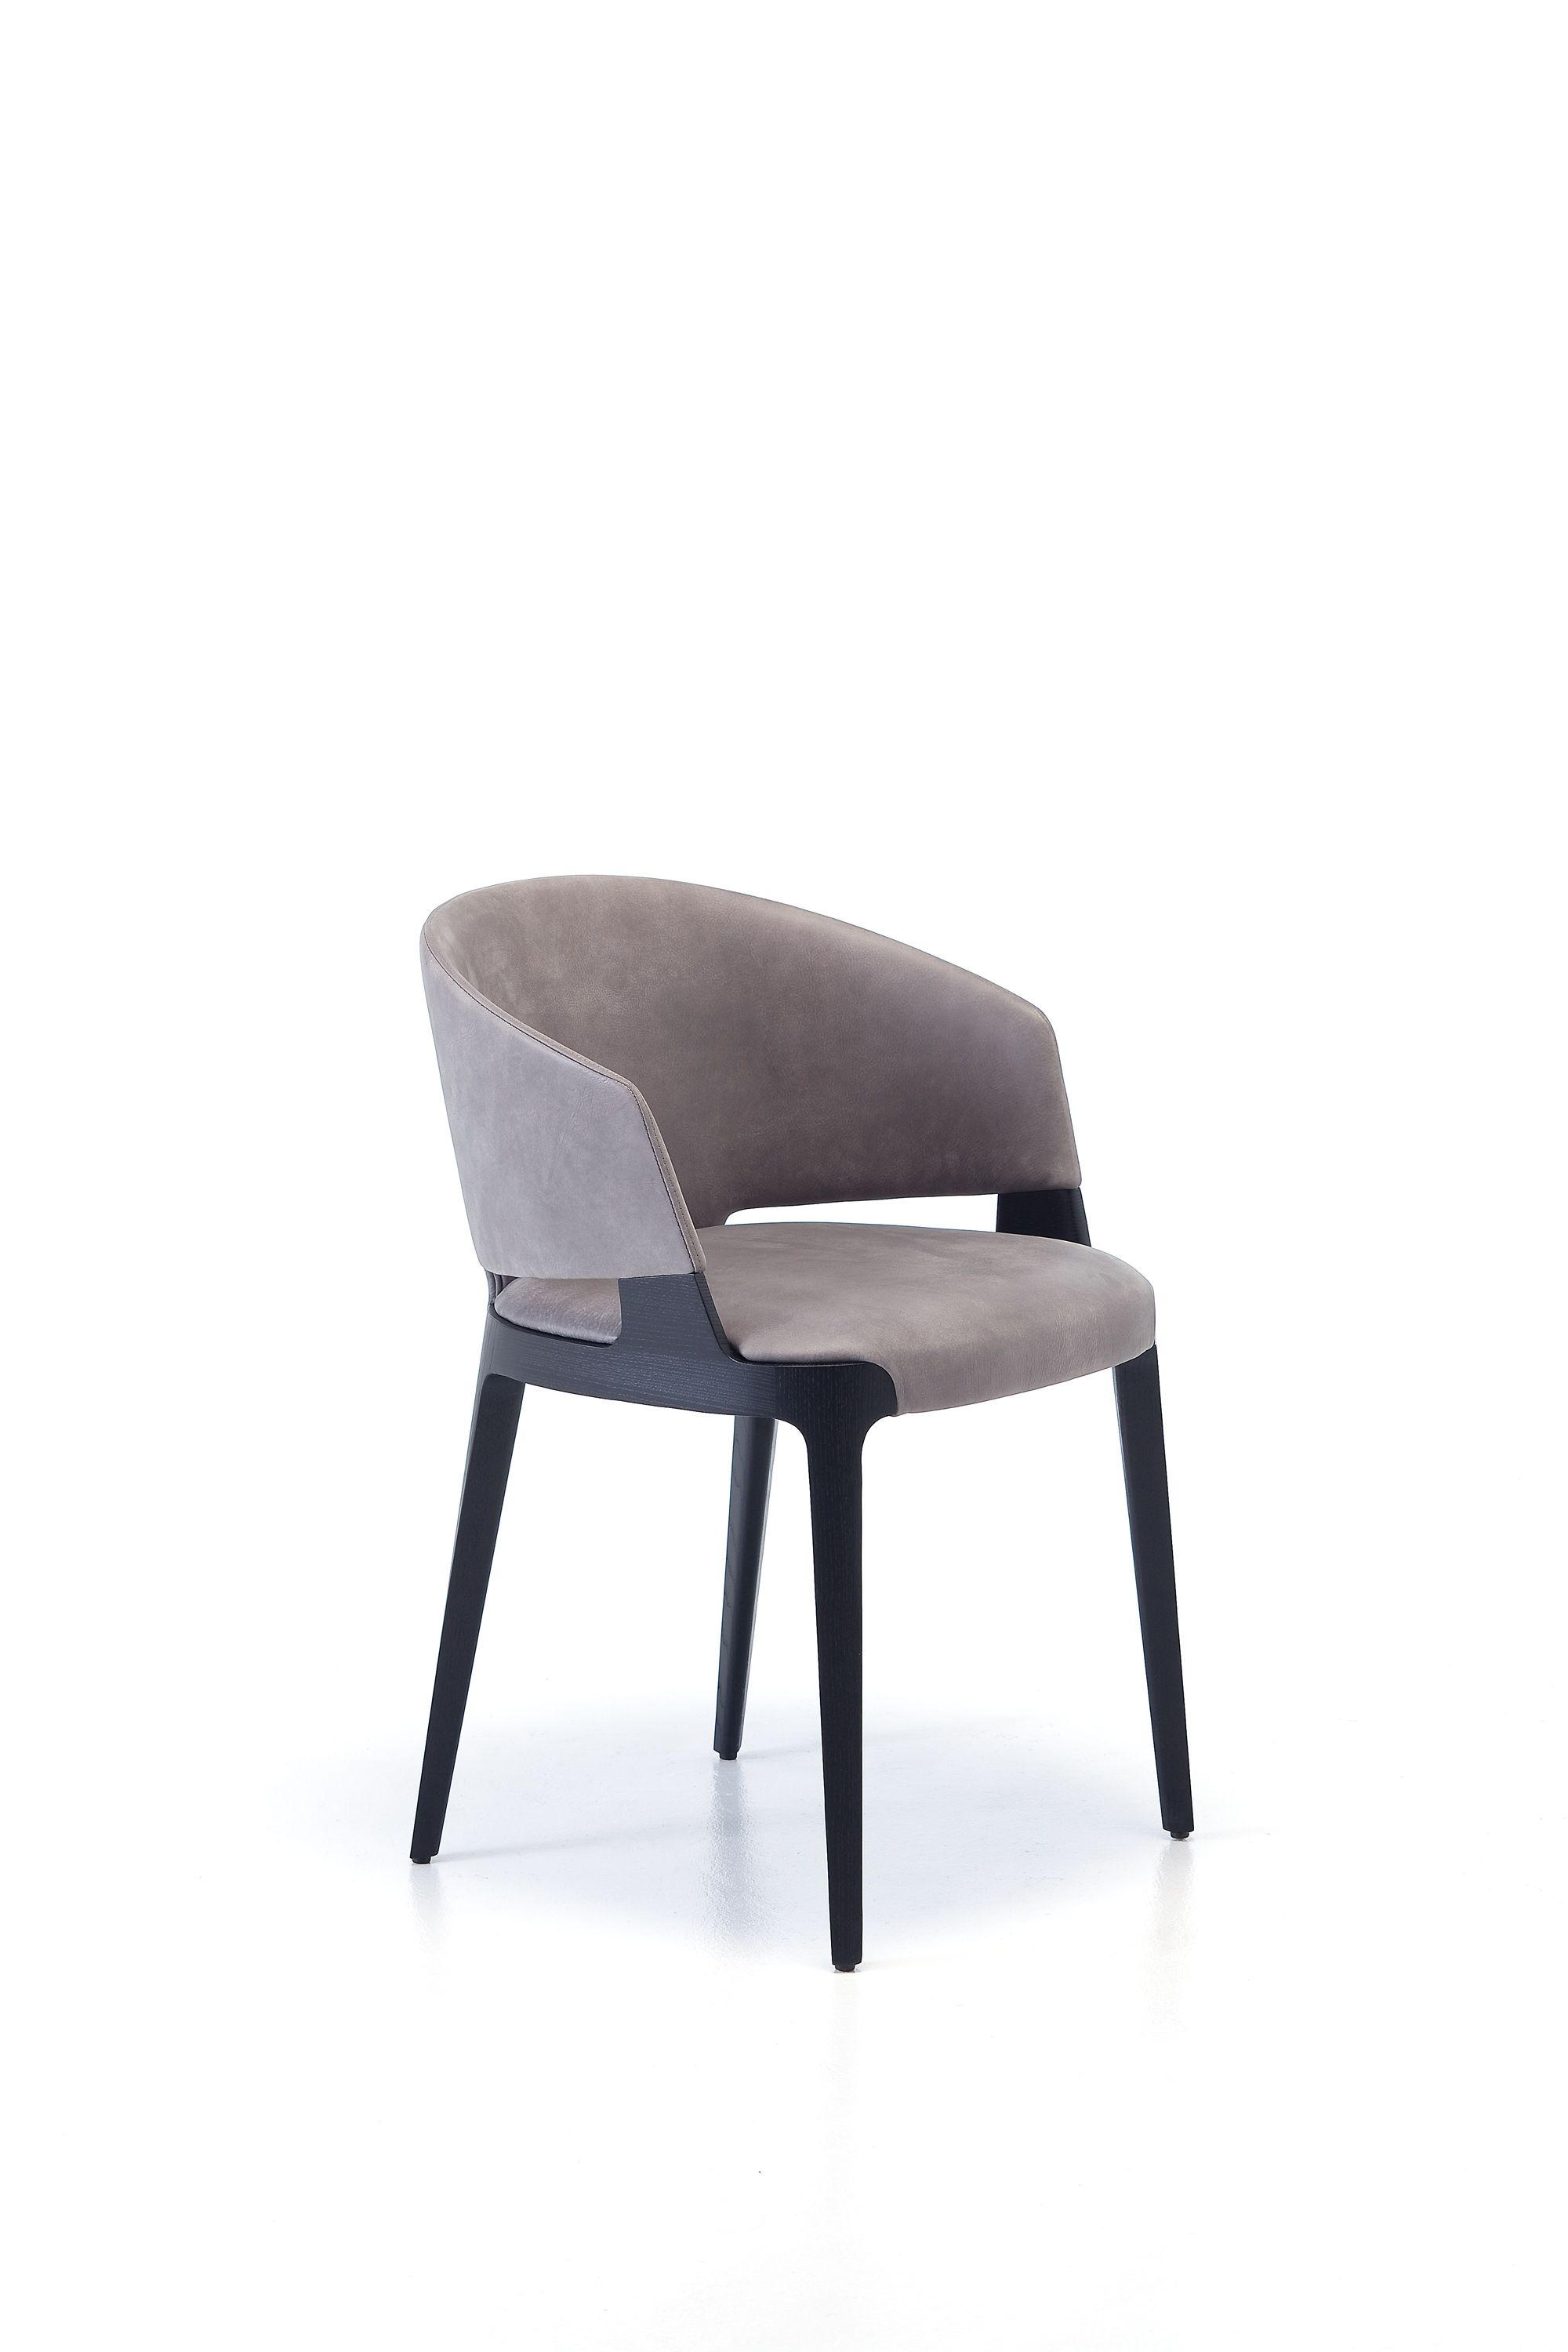 Potocco Velis Tub Chair Manufacturer Potocco